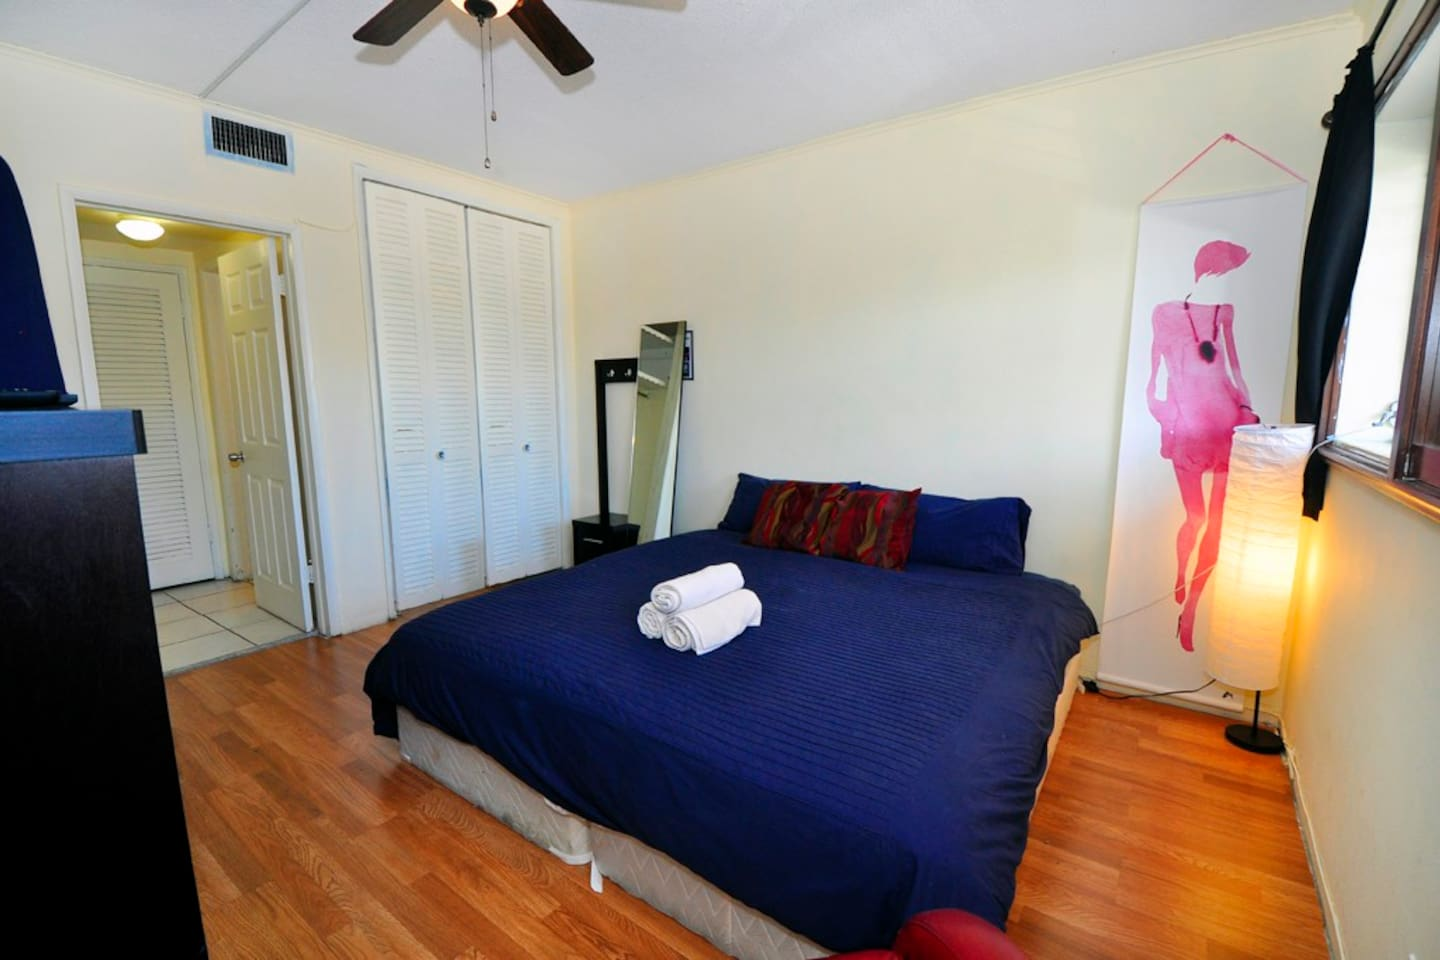 Main bedroom. 1 King Bed, 1 additional Twin Mattress. Flatscreen TV - Smart TV with Netflix.